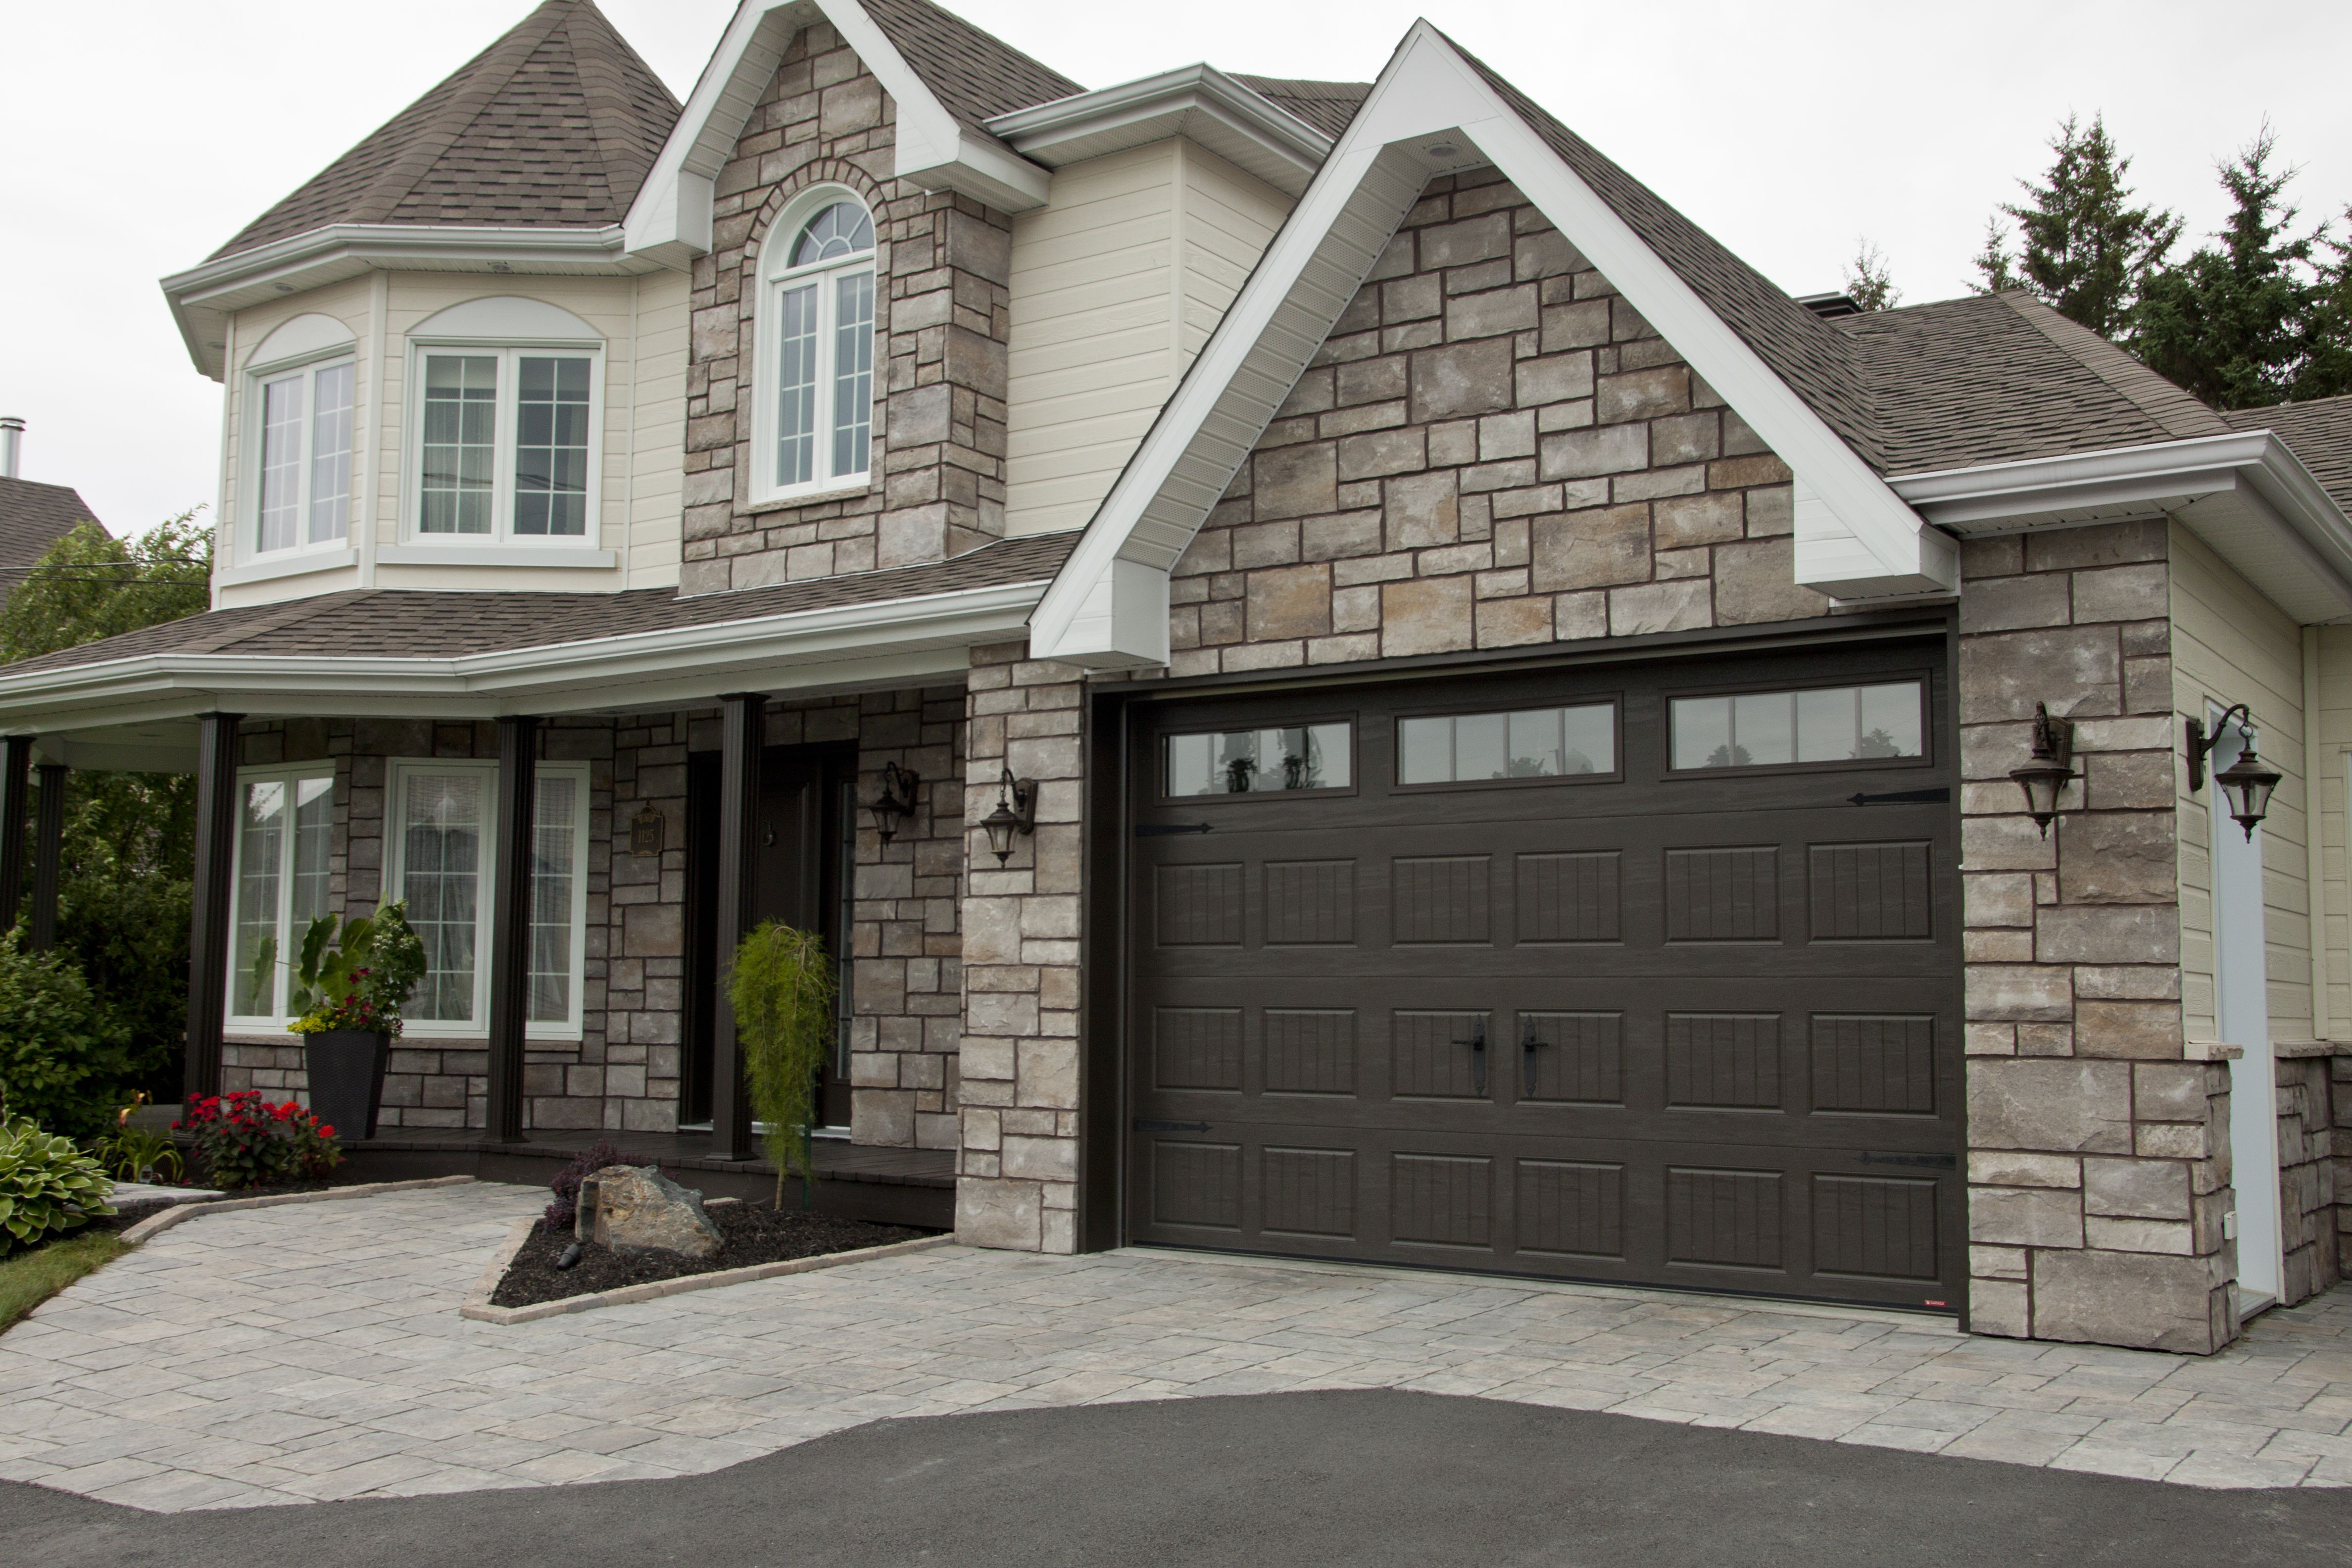 Carriage garage doors without windows  Garage Door Model  Carriage House SP u x u Ice White Orion